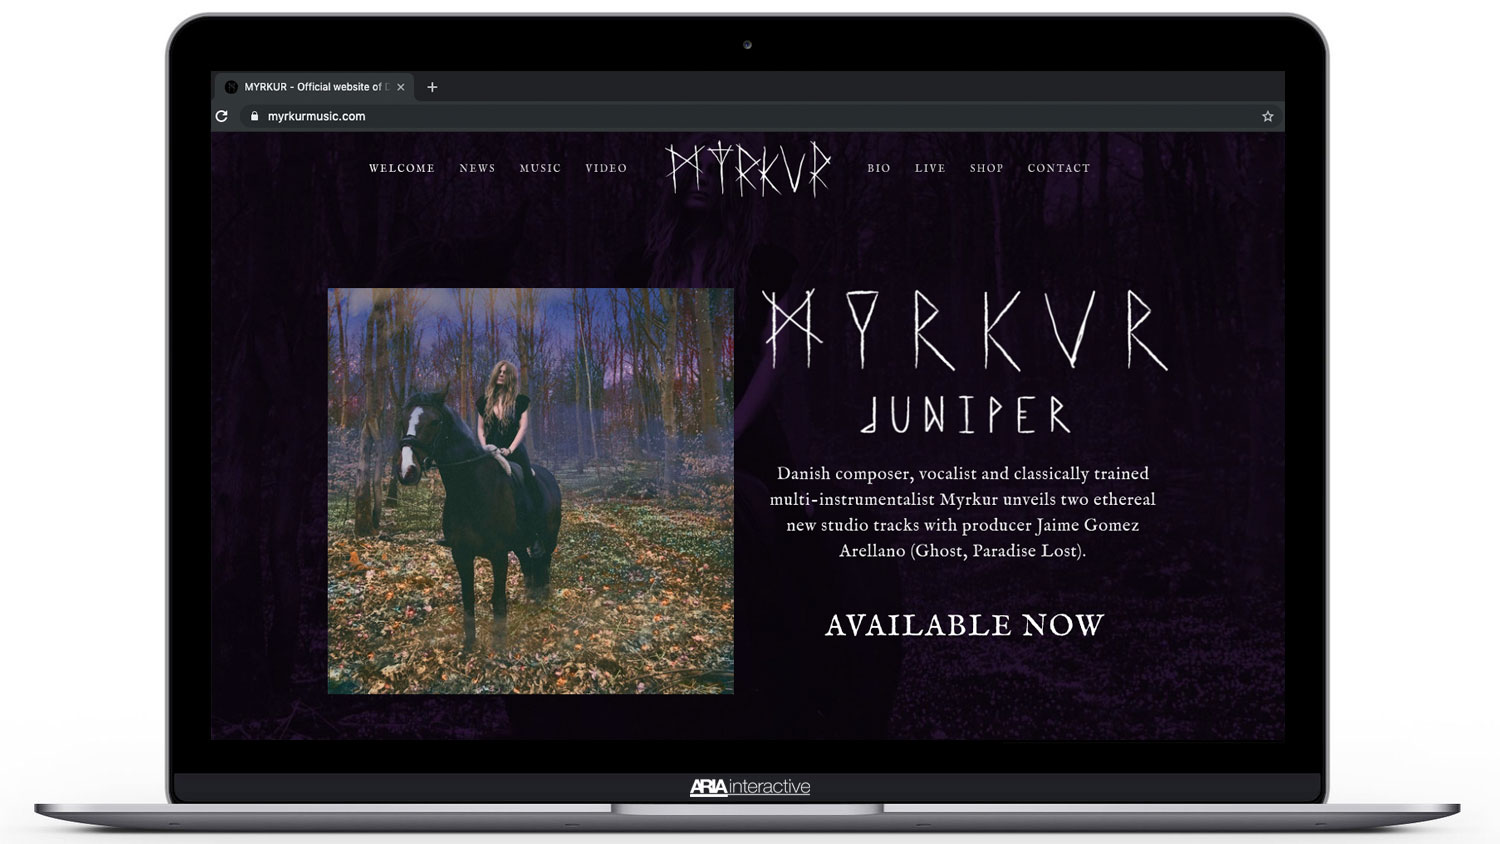 myrkur-website-aria-interactive.jpg